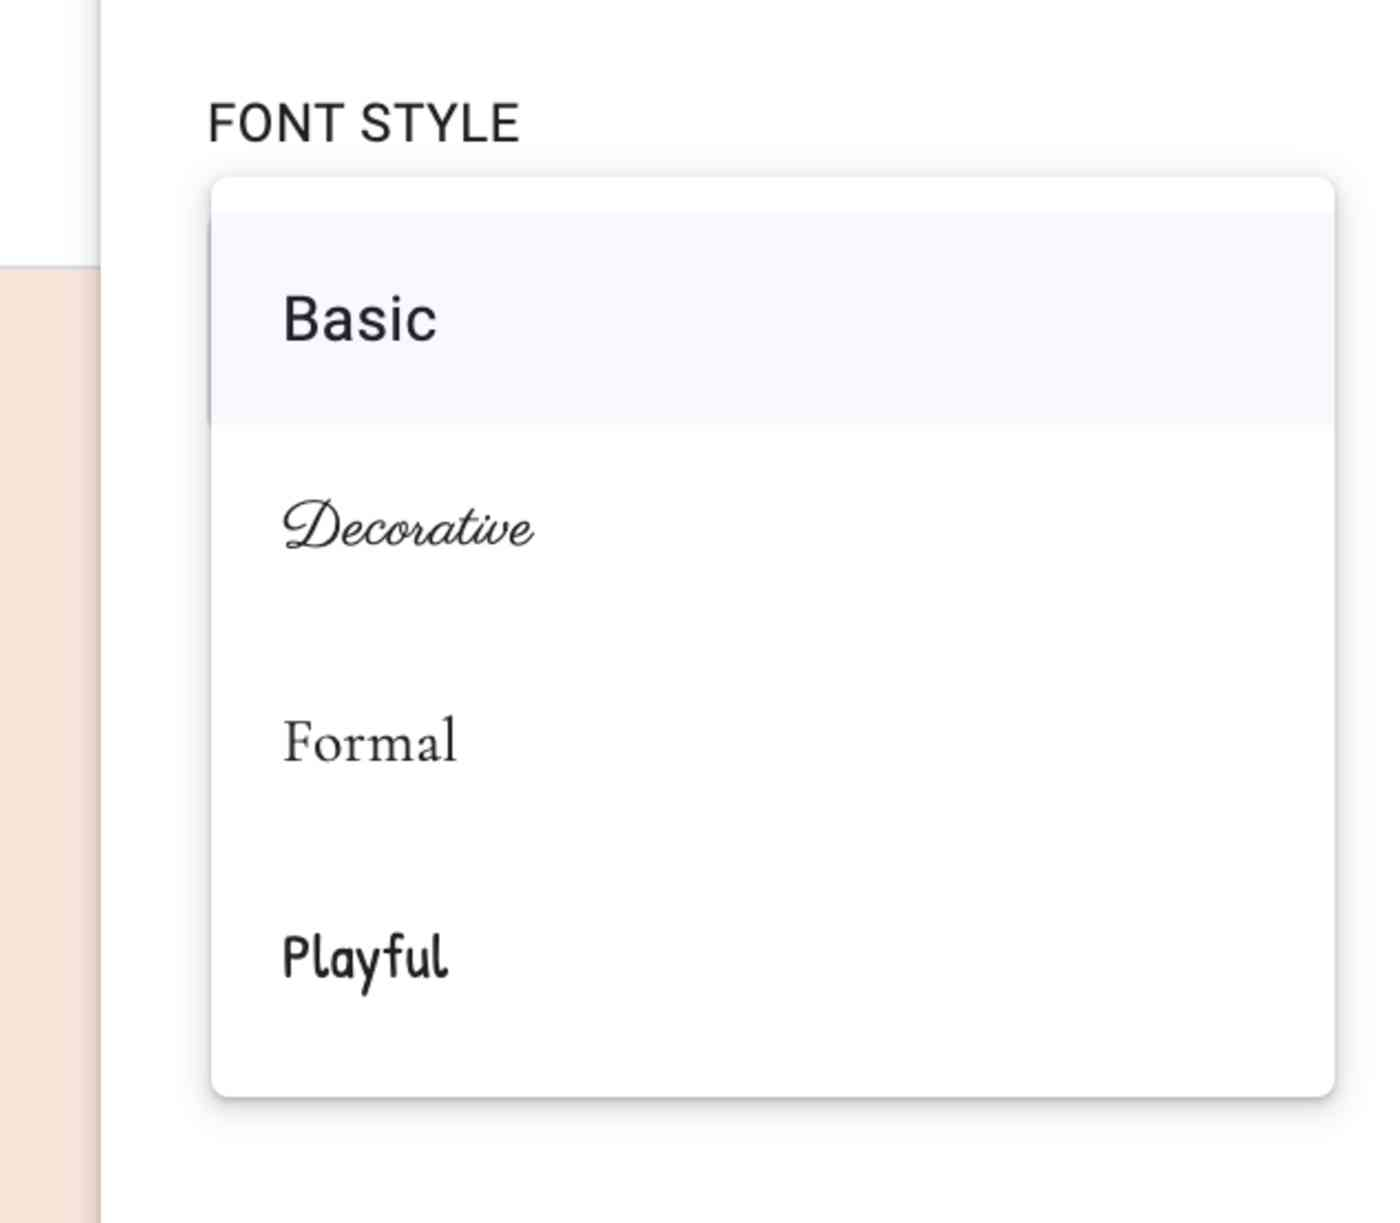 The four font choices